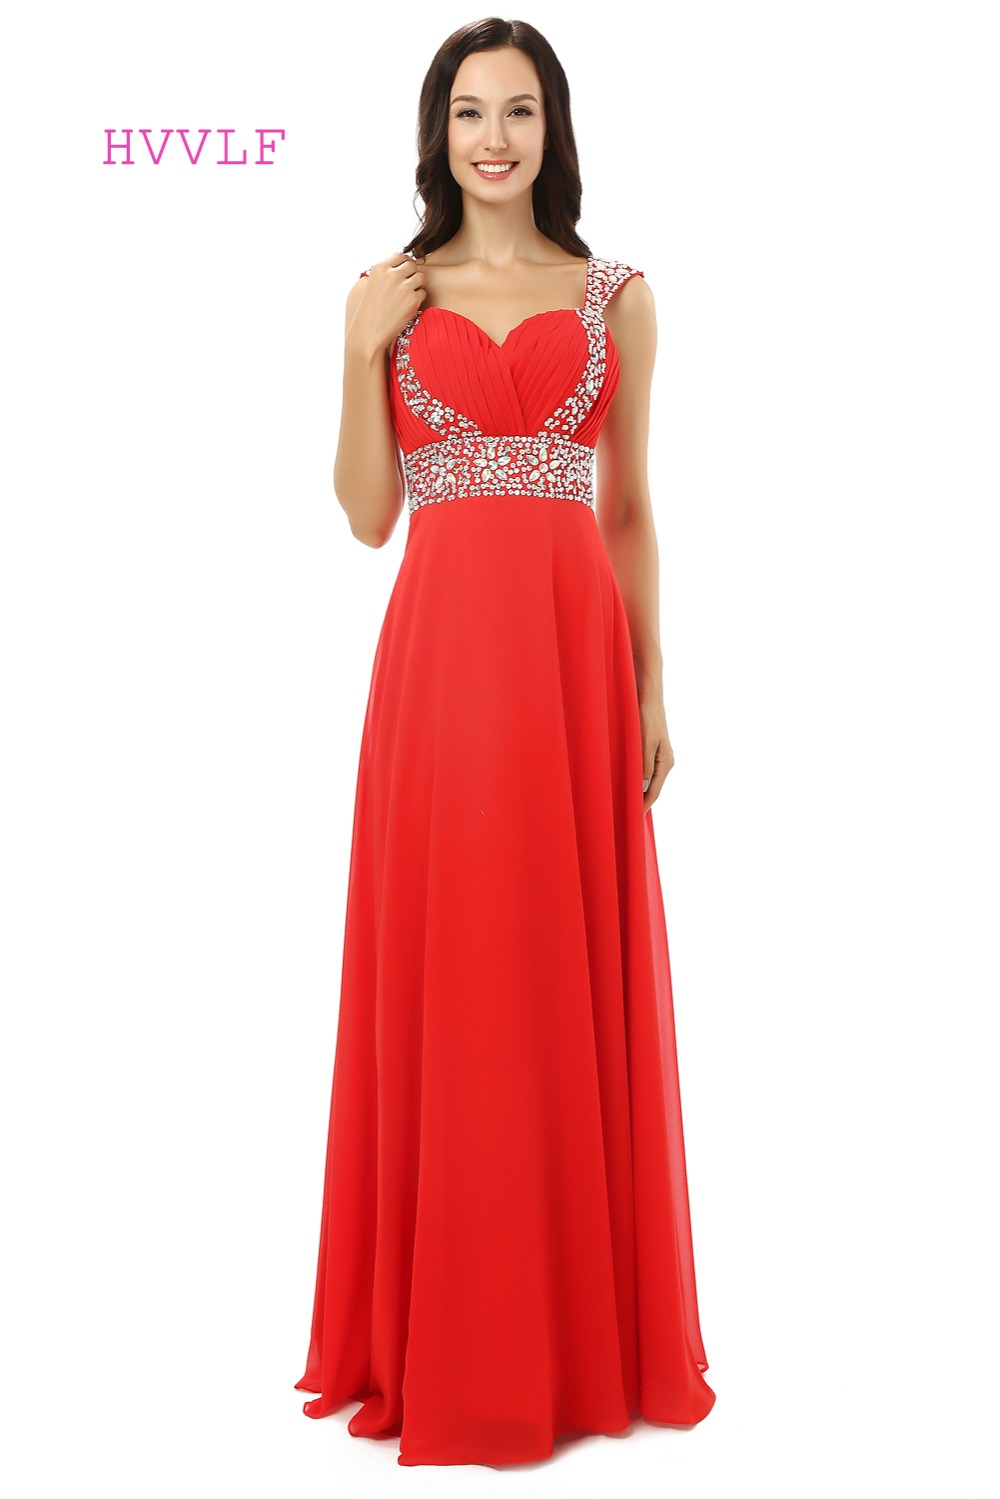 Red Robe De Soiree 2019 A-line Sweetheart Cap Sleeves Chiffon Beaded Crystals Women Long   Prom     Dresses     Prom   Gown Evening   Dresses